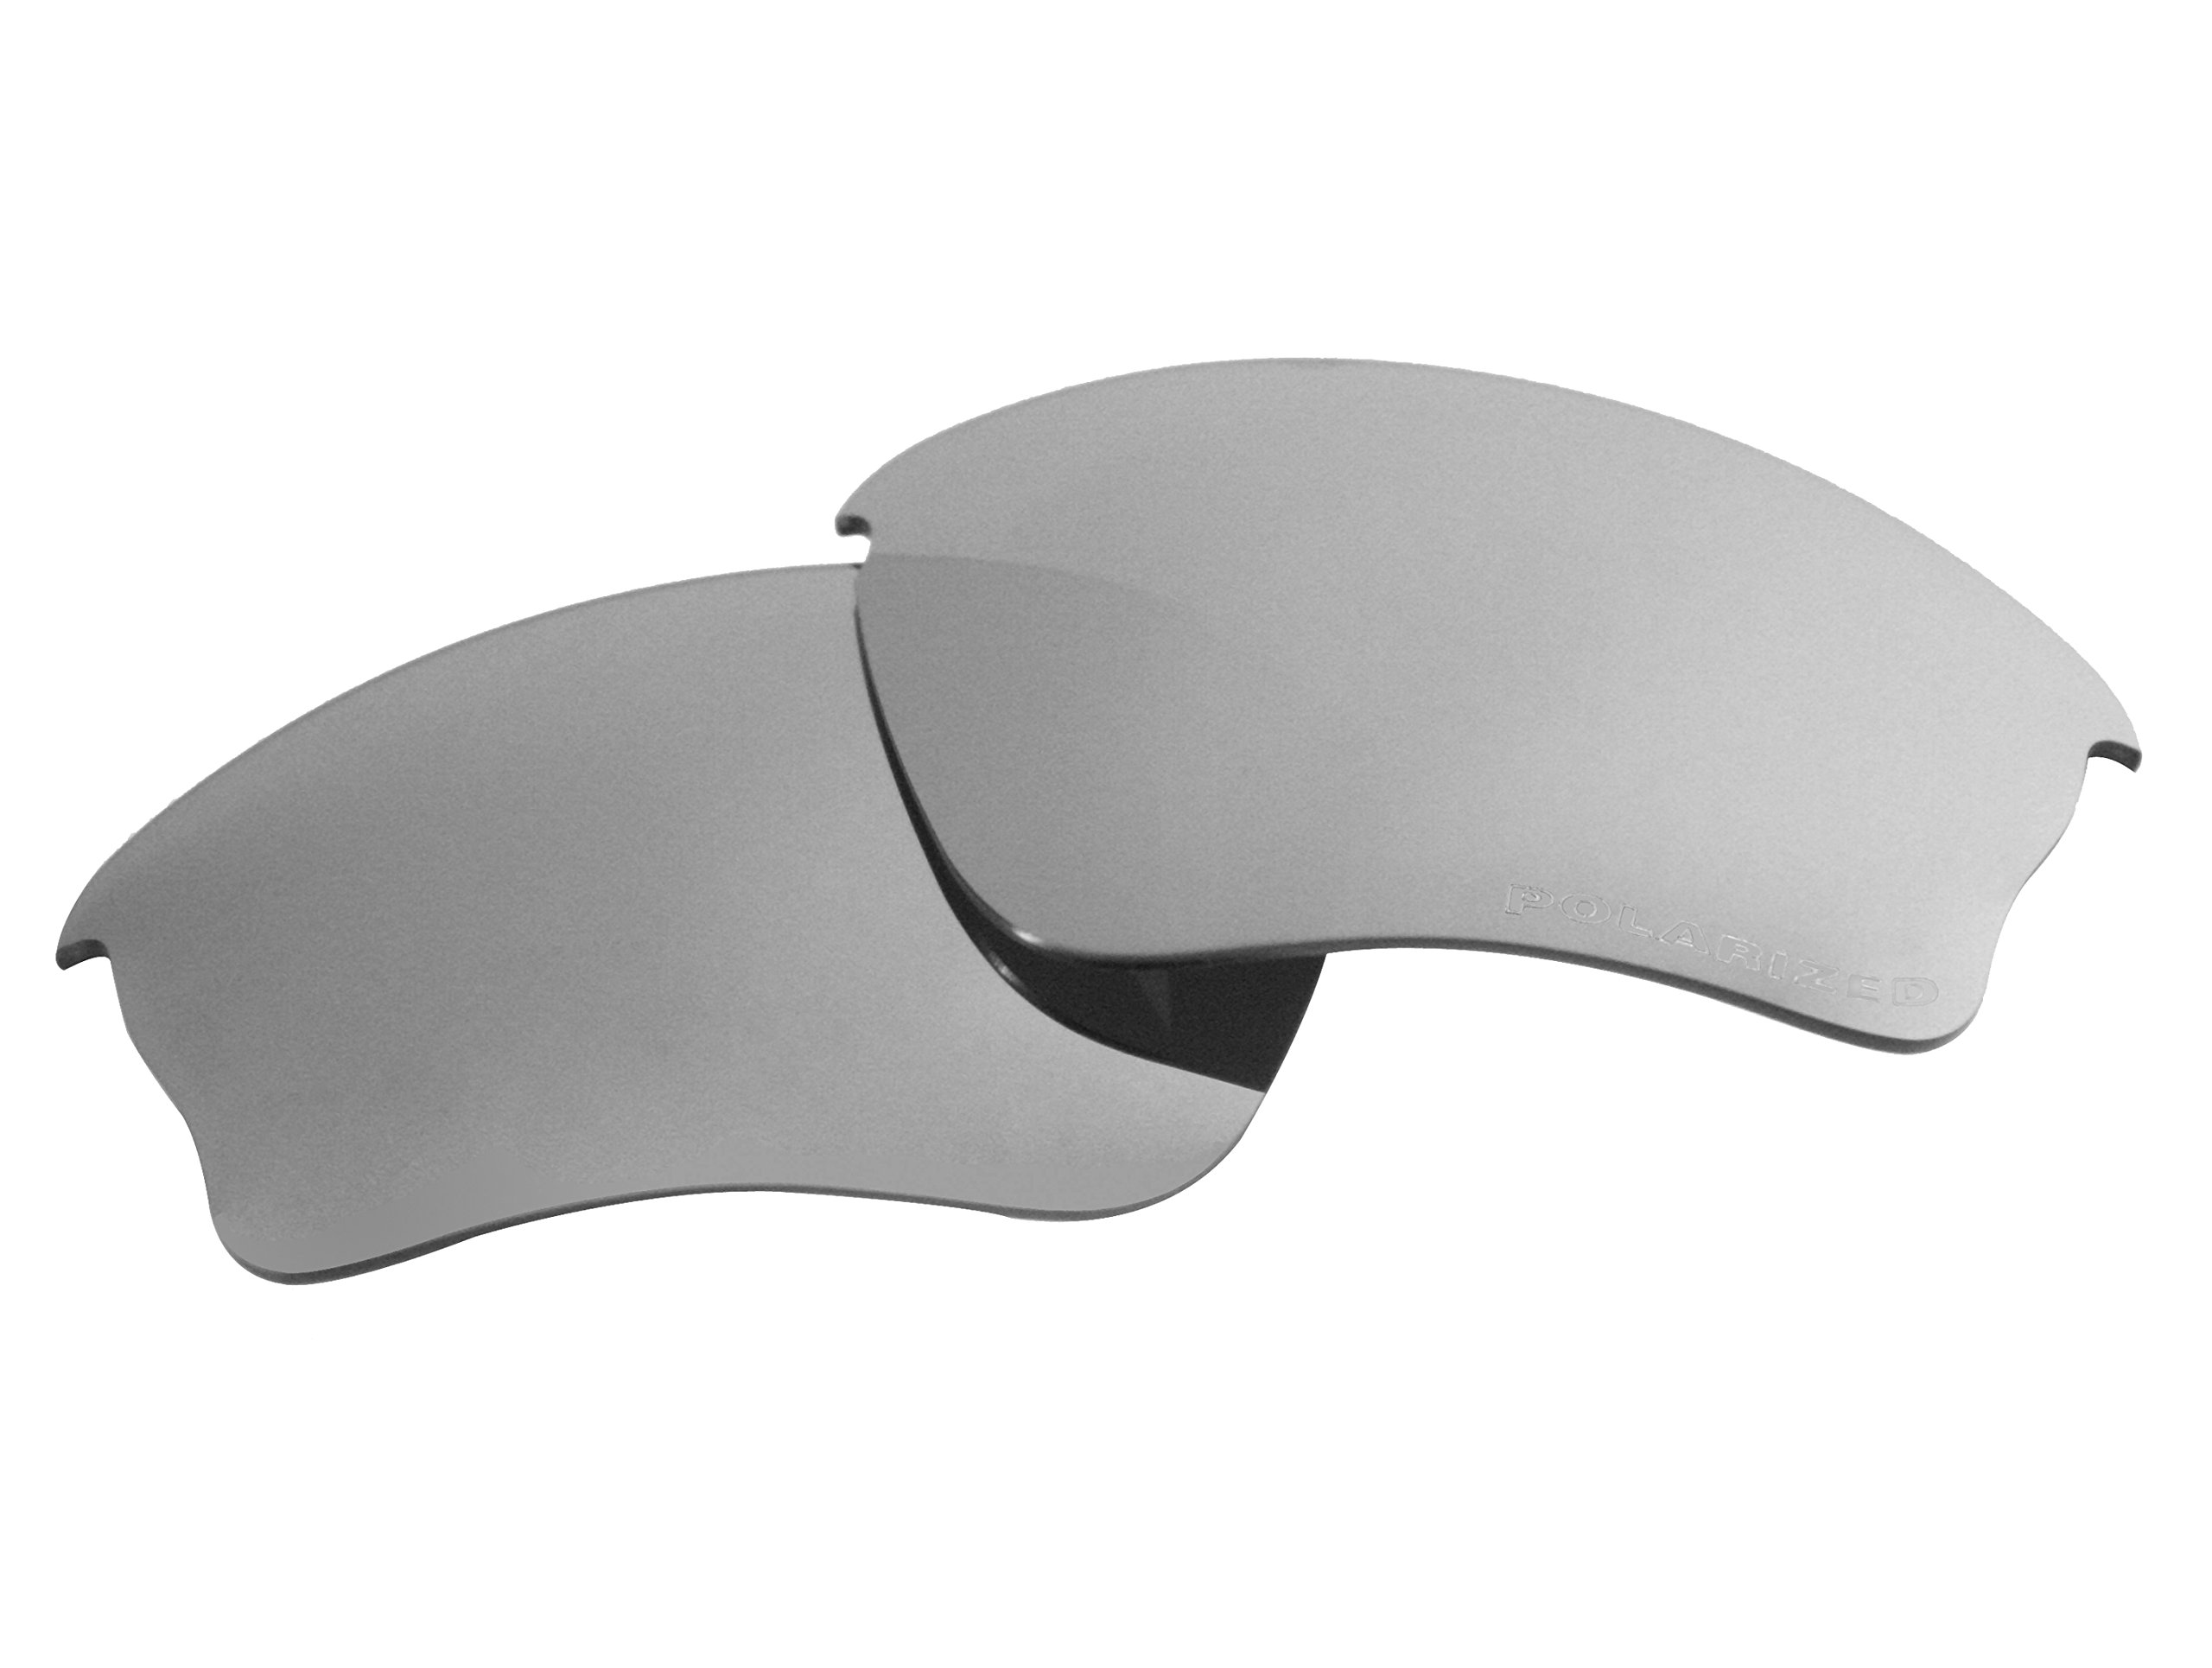 Polarized Replacement Sunglasses Lenses for Oakley Half Jacket XLJ with UV Protection(Titanium Mirror) by C.D